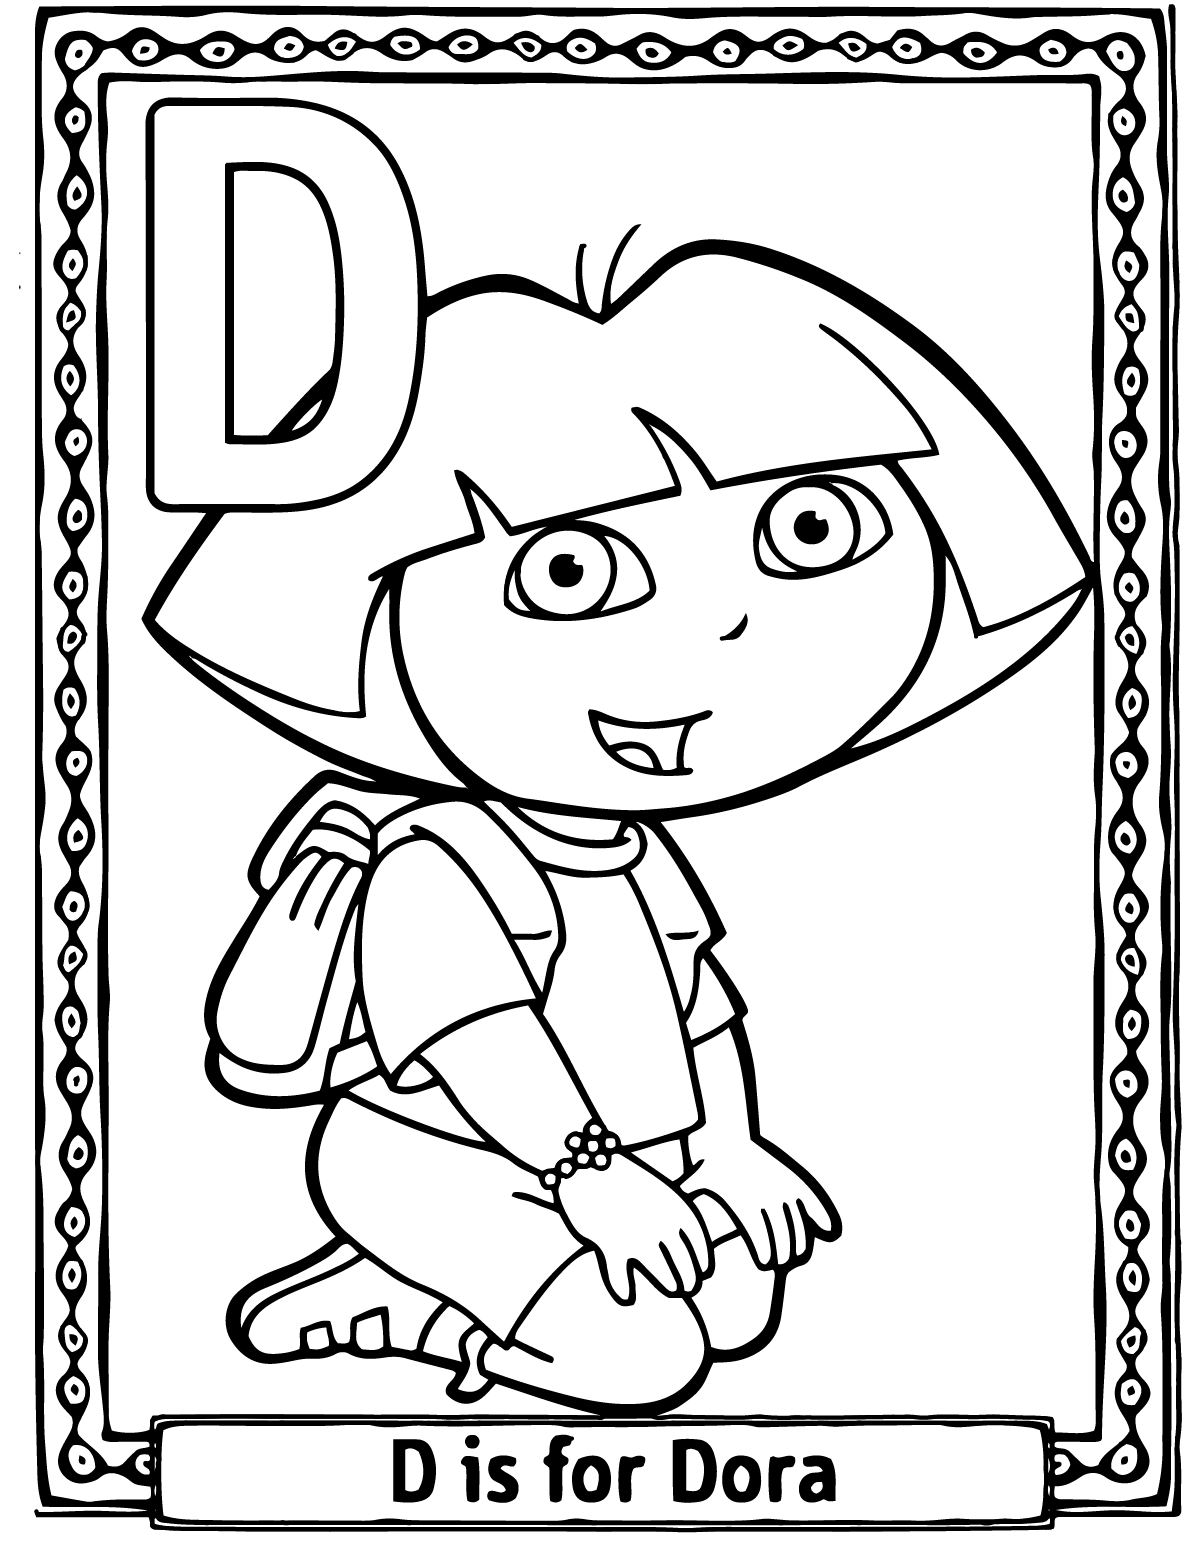 Dora Cartoon Alphabet Coloring Pages D